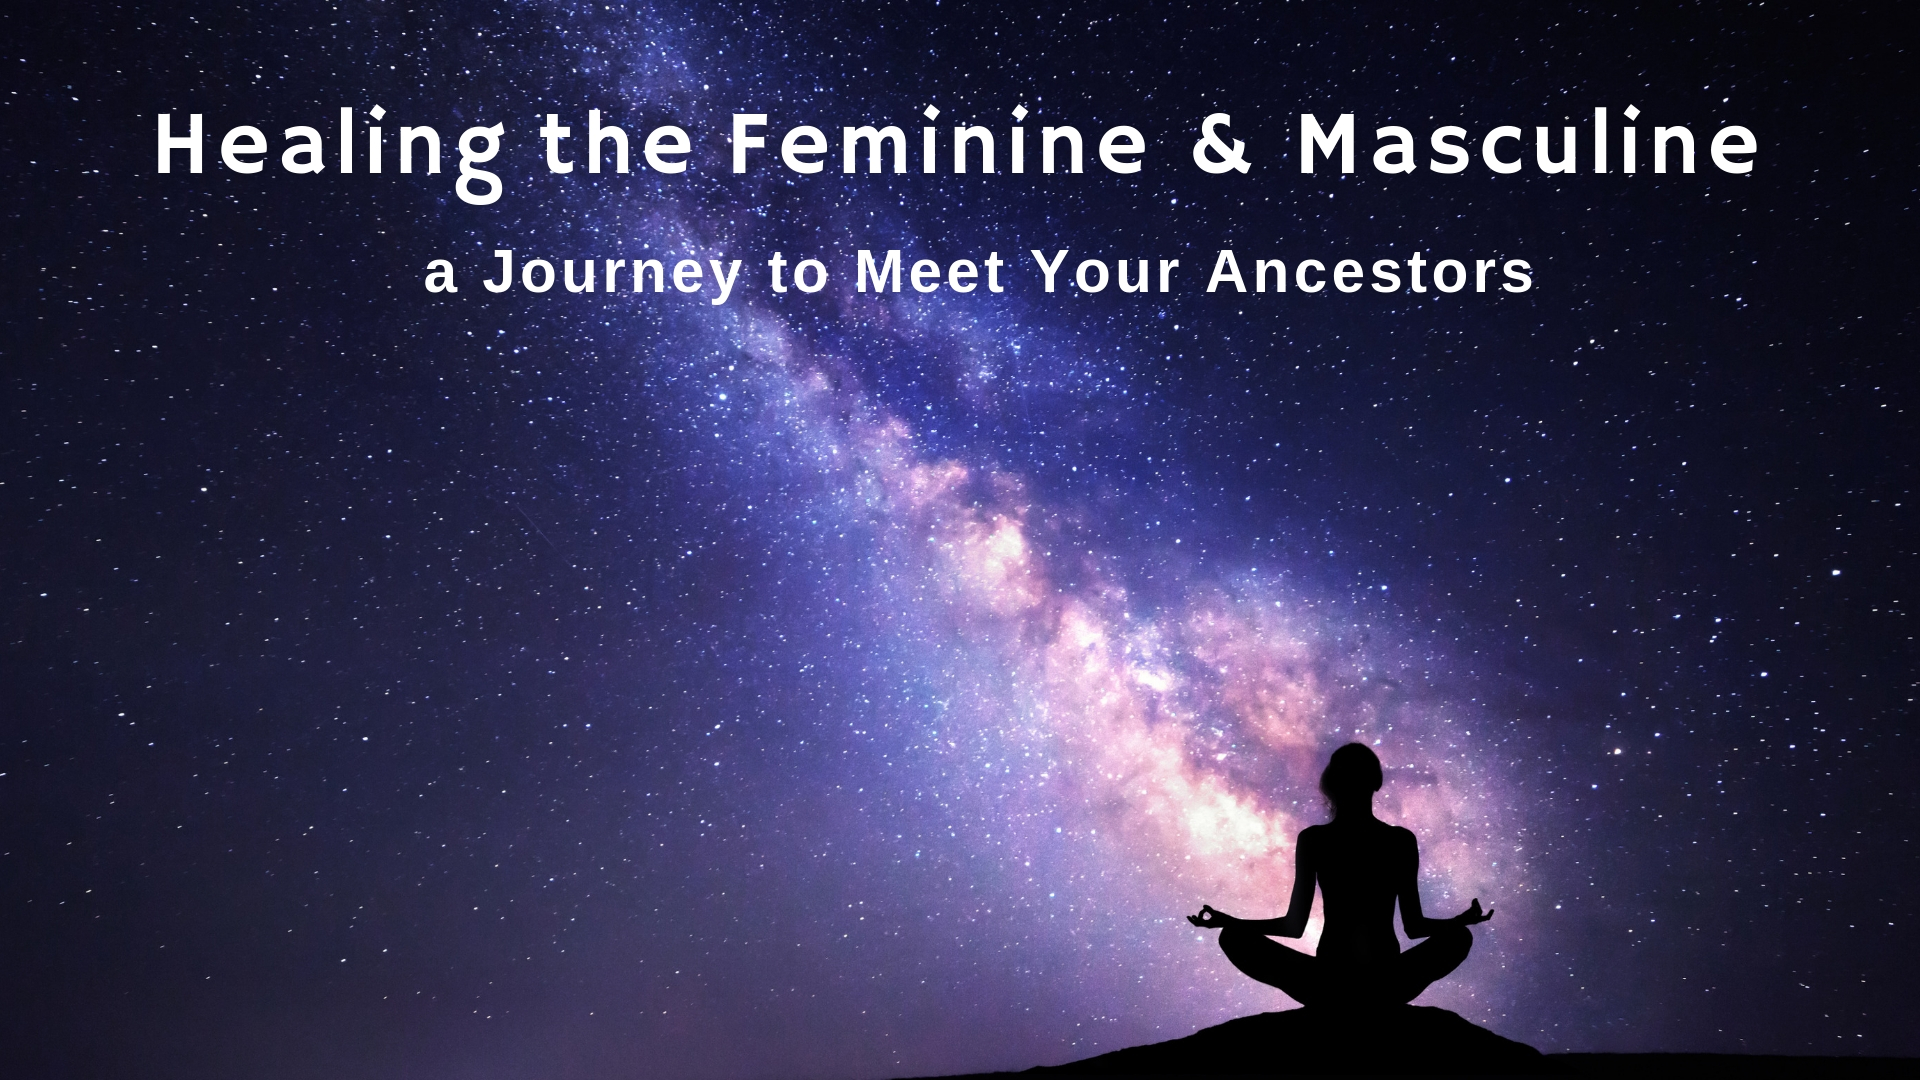 Healing the feminine & Masculine meditation journey - A guided journey with Cissi Williams where you journey into the womb of Mother Earth to heal the Feminine, and then up into the light of the Sun to heal the Masculine.